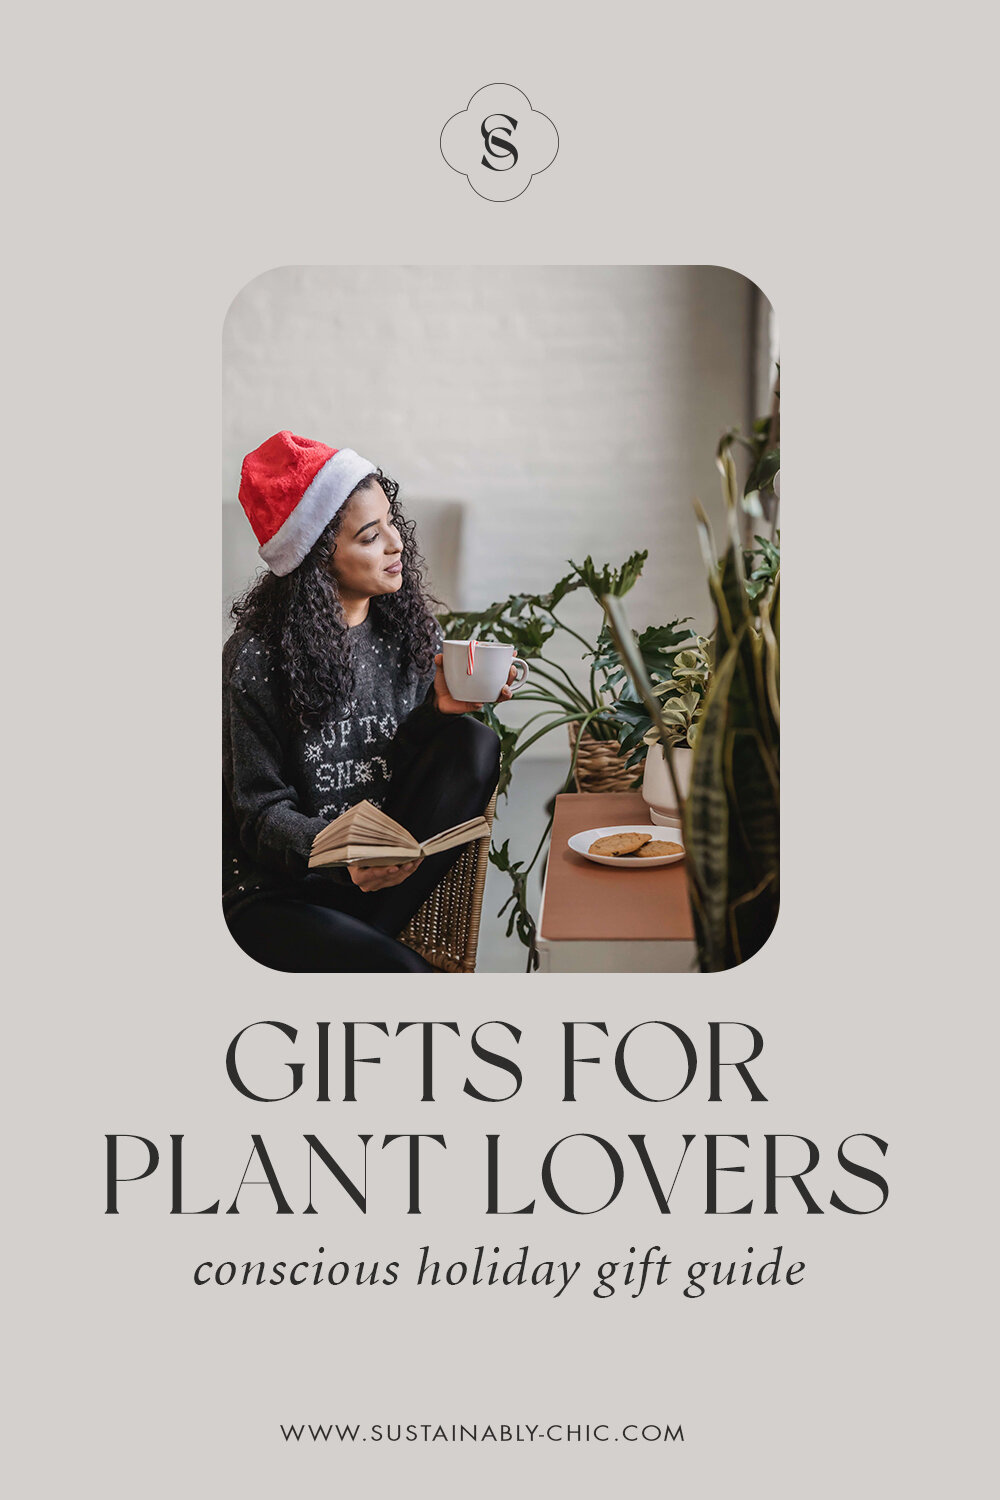 Sustainably Chic | Sustainable Fashion & Lifestyle Blog | Best Gifts for Plant Lovers.jpg